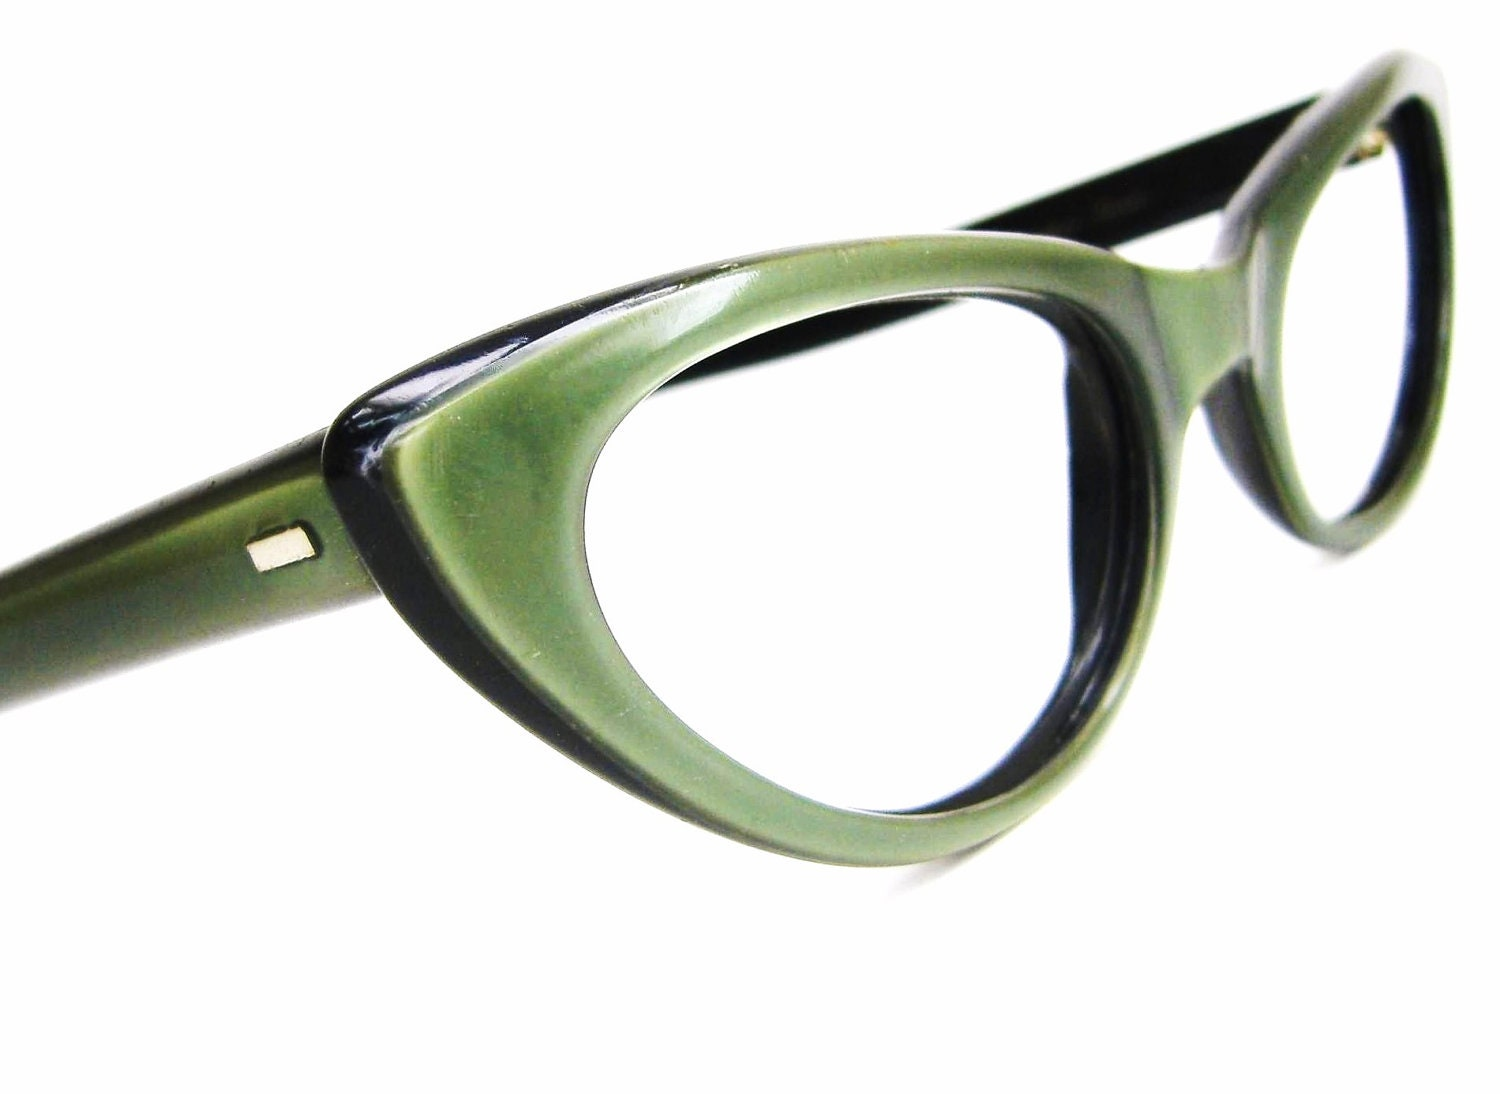 Eyeglass Frames Green : Vintage 50s Eyeglasses Green Cat Eye Frame Safilo